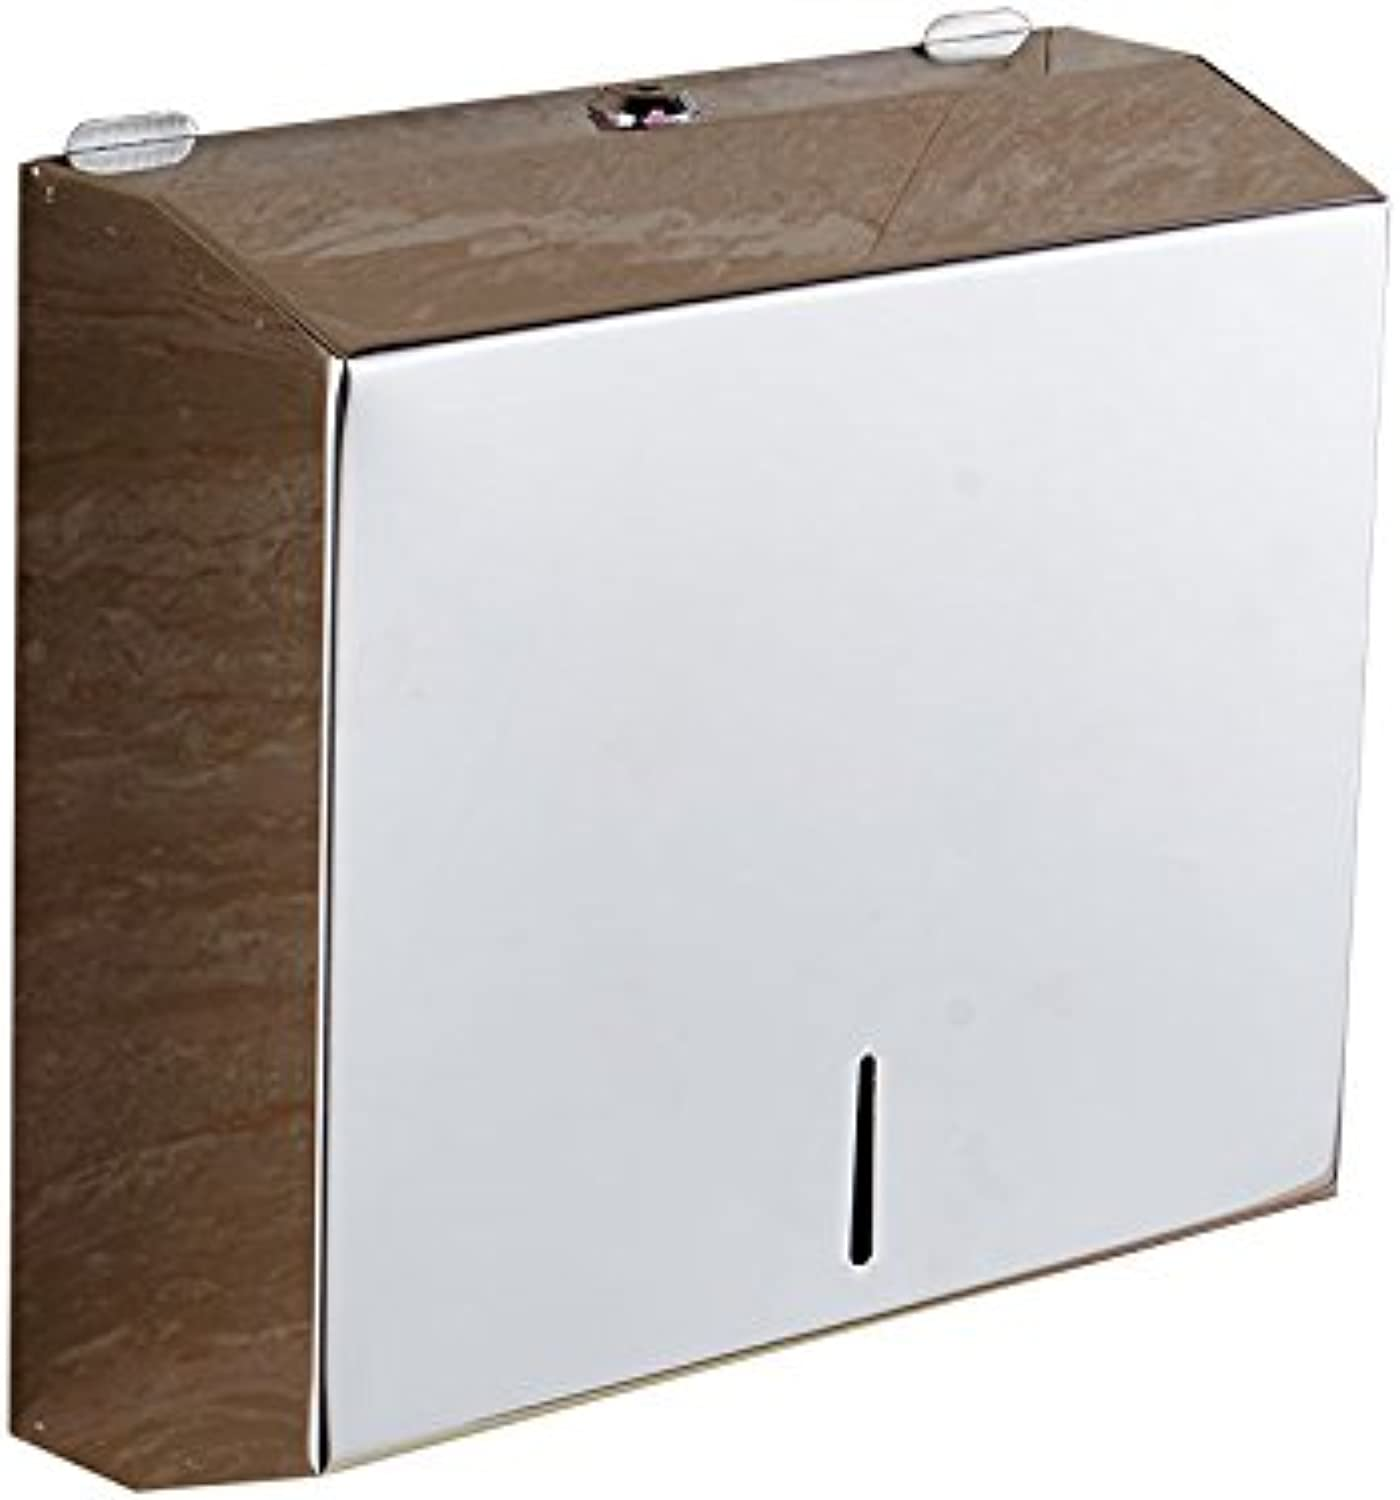 Hardwareh 304 Stainless Steel Hand Carton Toilet Paper Box Toilet Paper Box Hand Carton Toilet Paper Towel Box,Short Mirror 201 Stainless Steel Materialmodern Simple and Durable Home Decoration CLAS